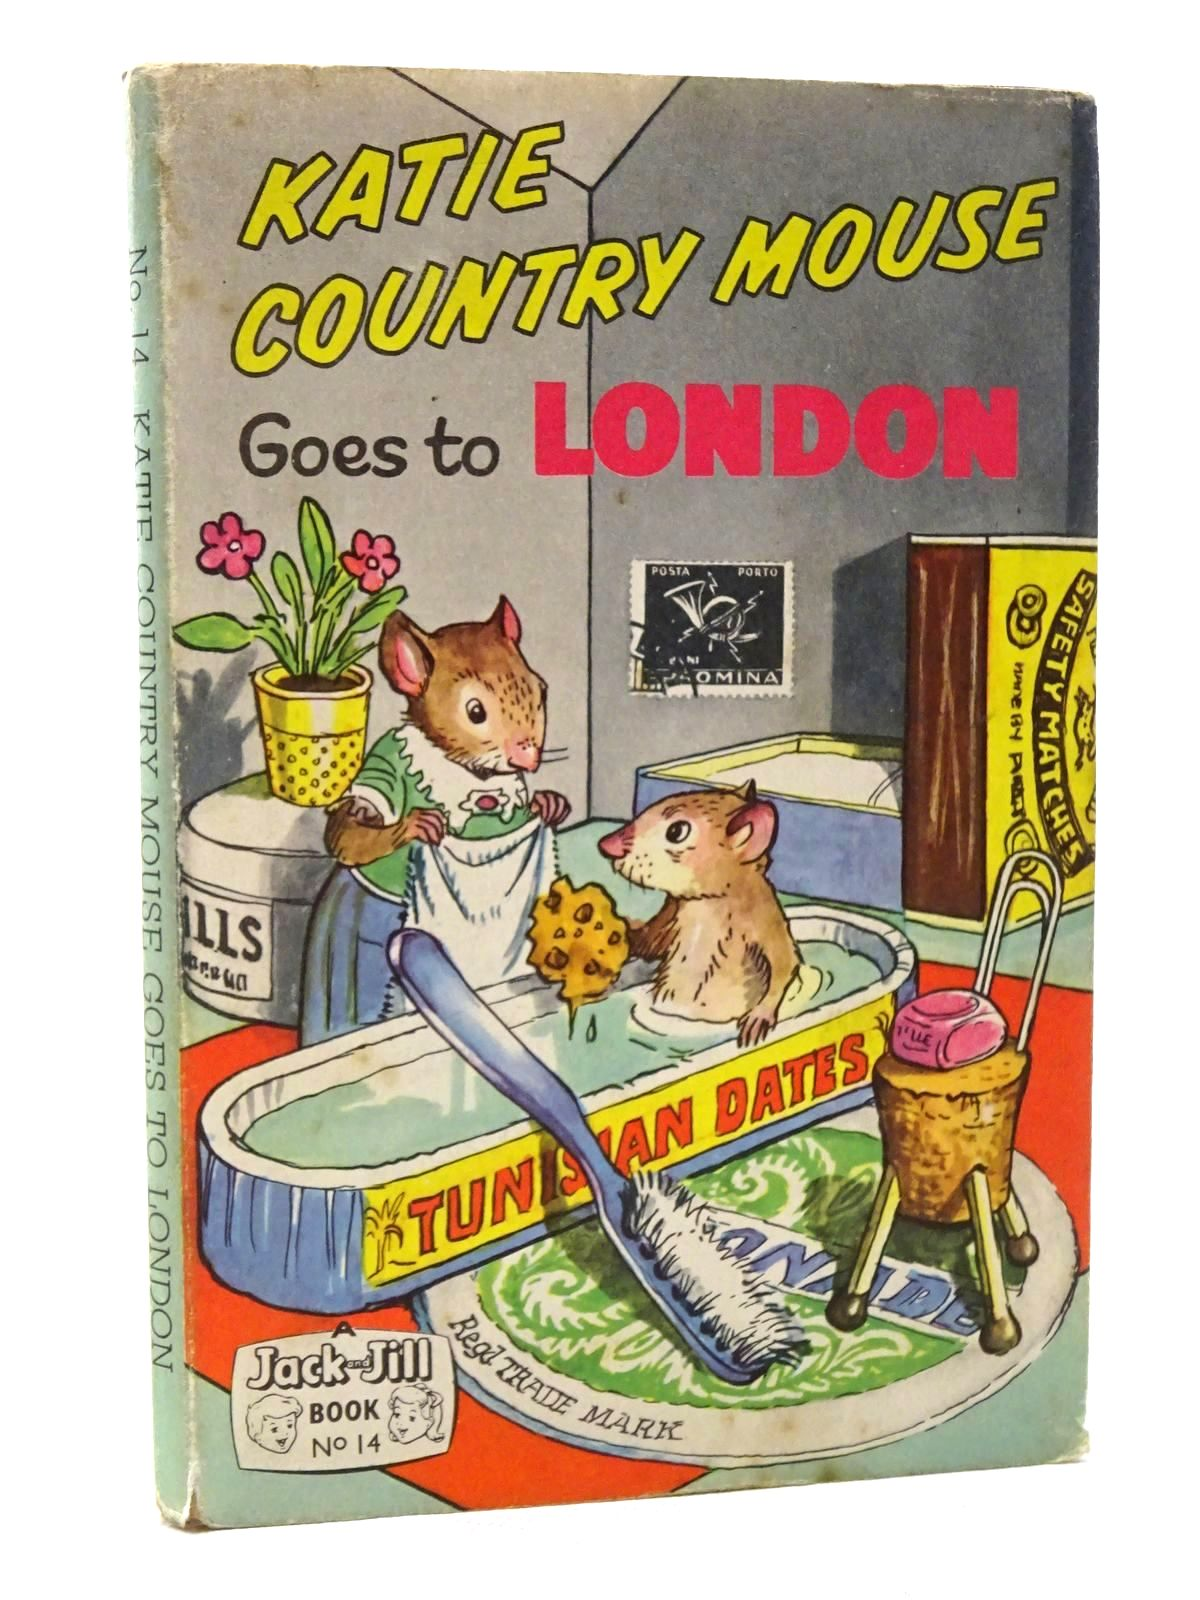 Photo of KATIE COUNTRY MOUSE GOES TO LONDON published by Fleetway Publications Ltd. (STOCK CODE: 2124285)  for sale by Stella & Rose's Books